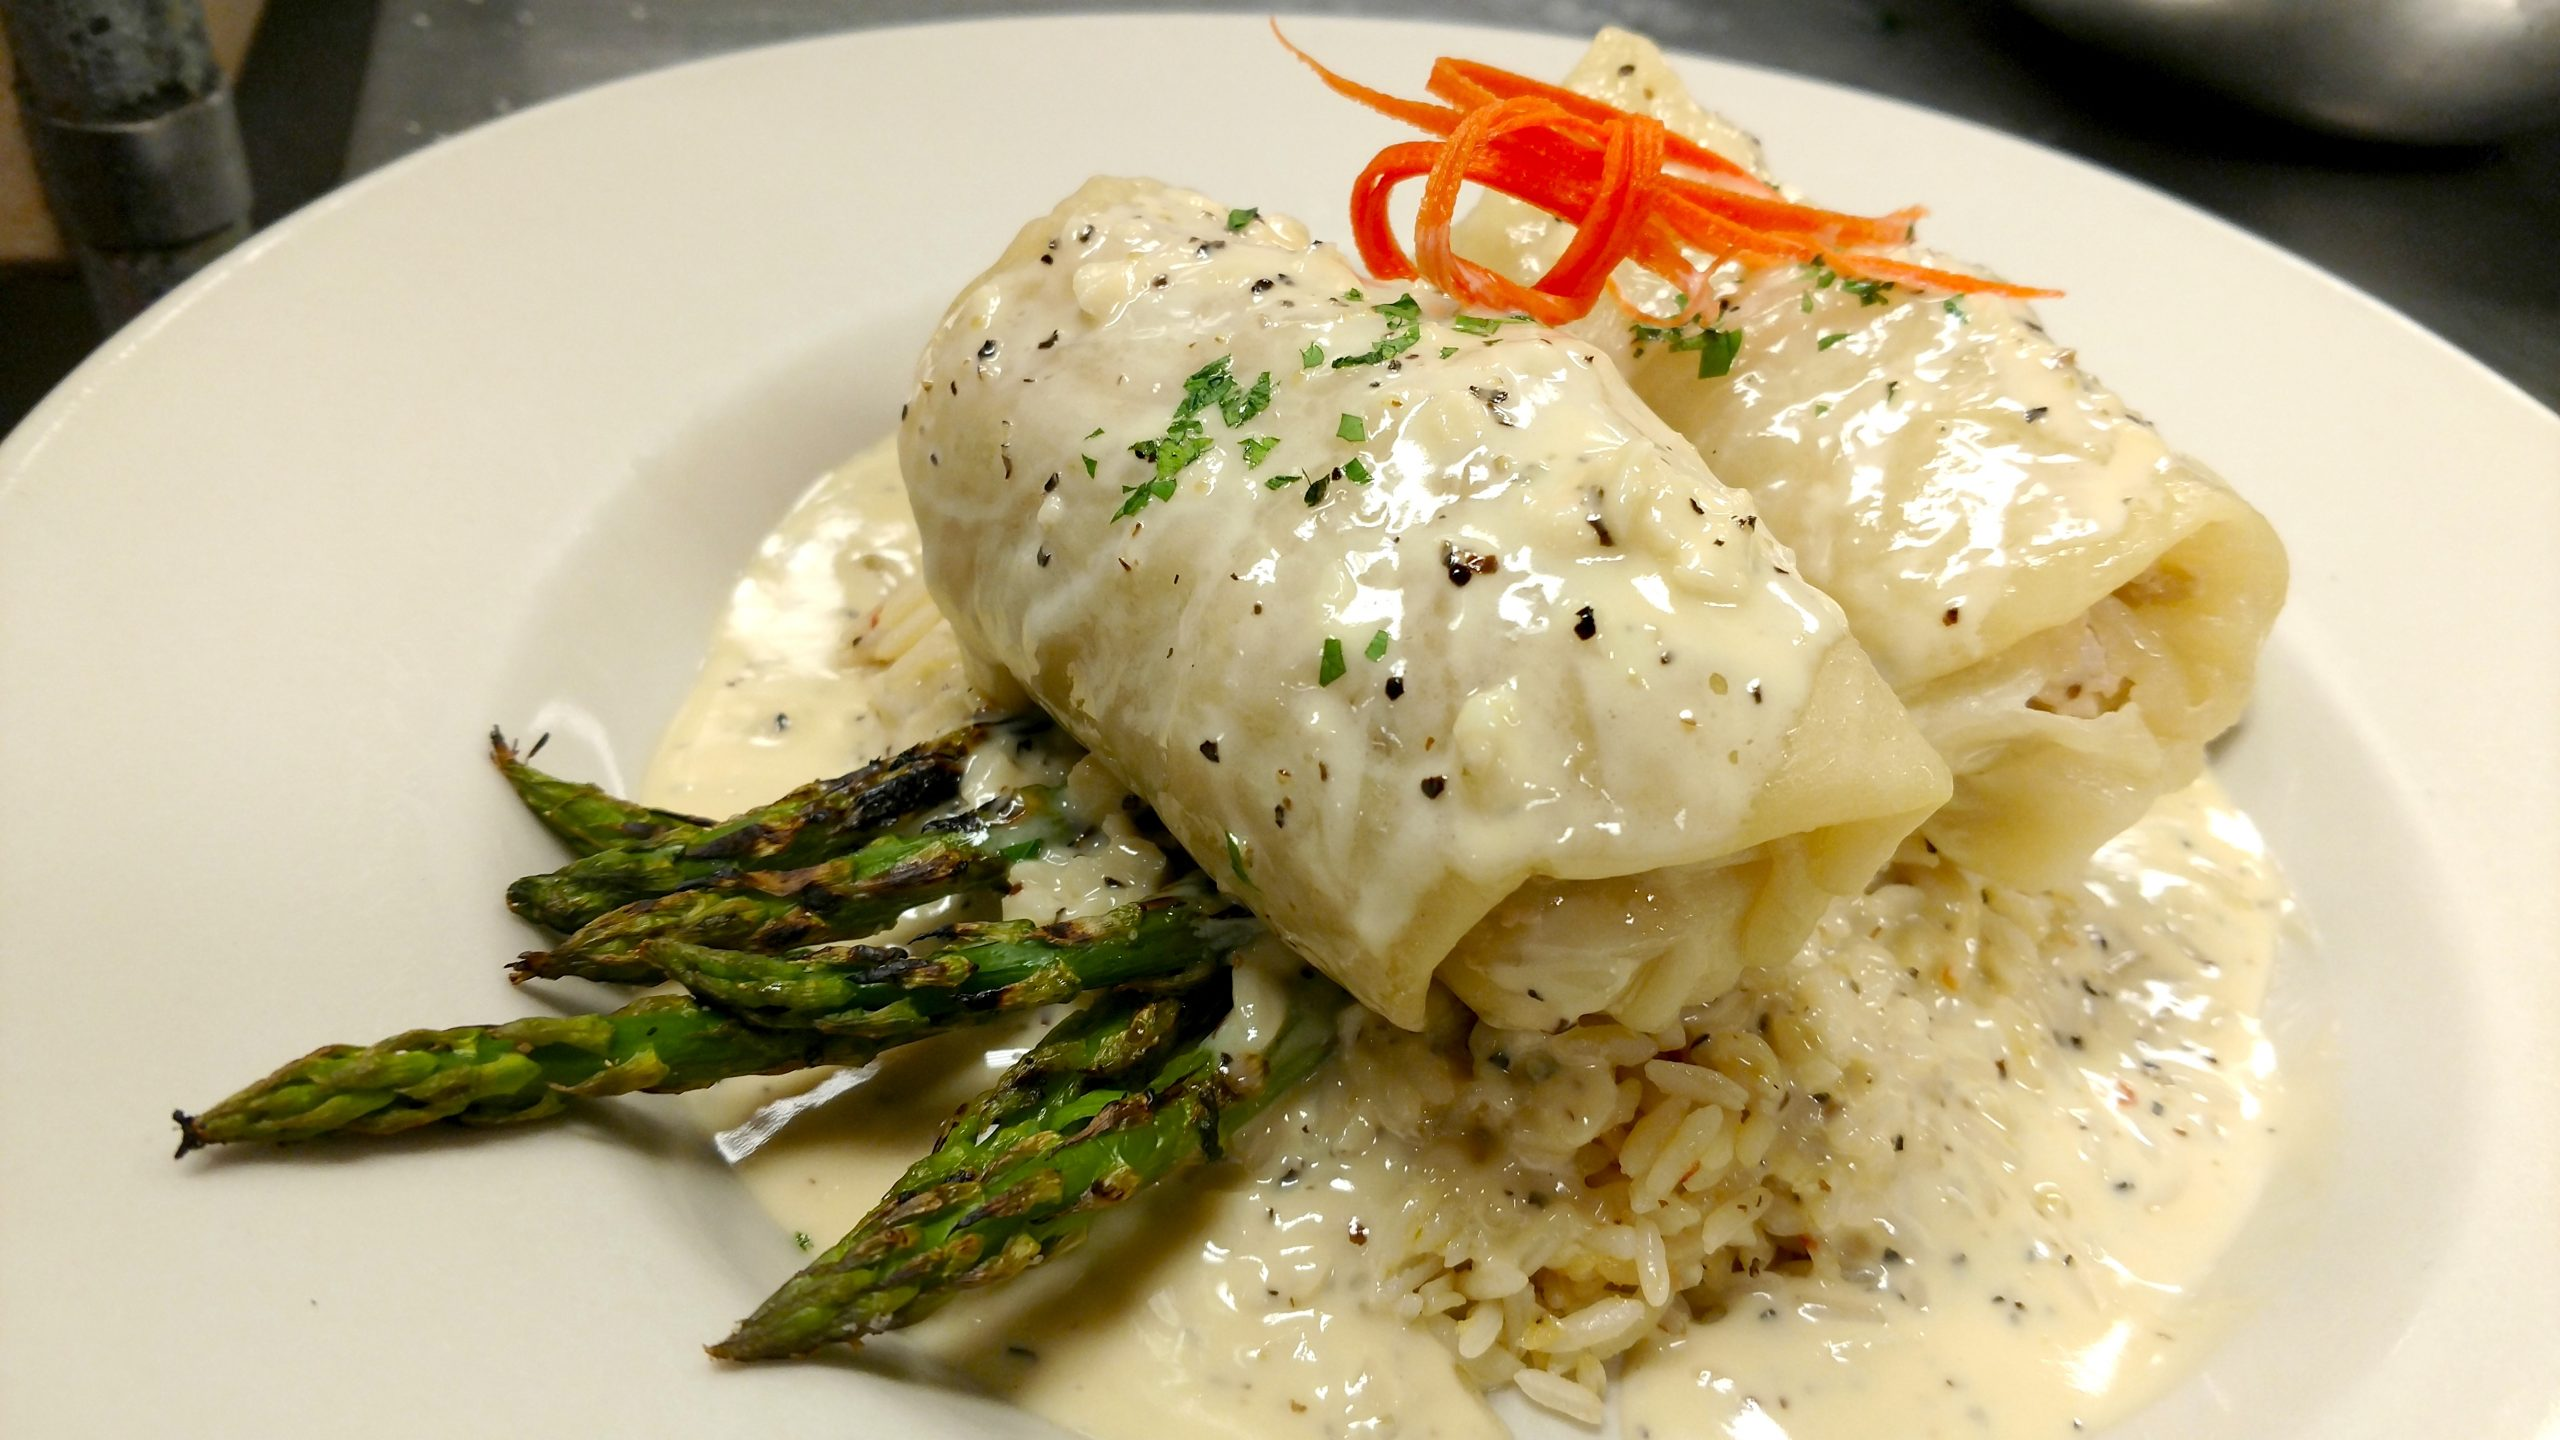 Jake and Telly's Specials - Stuffed Cabbage & Asparagus